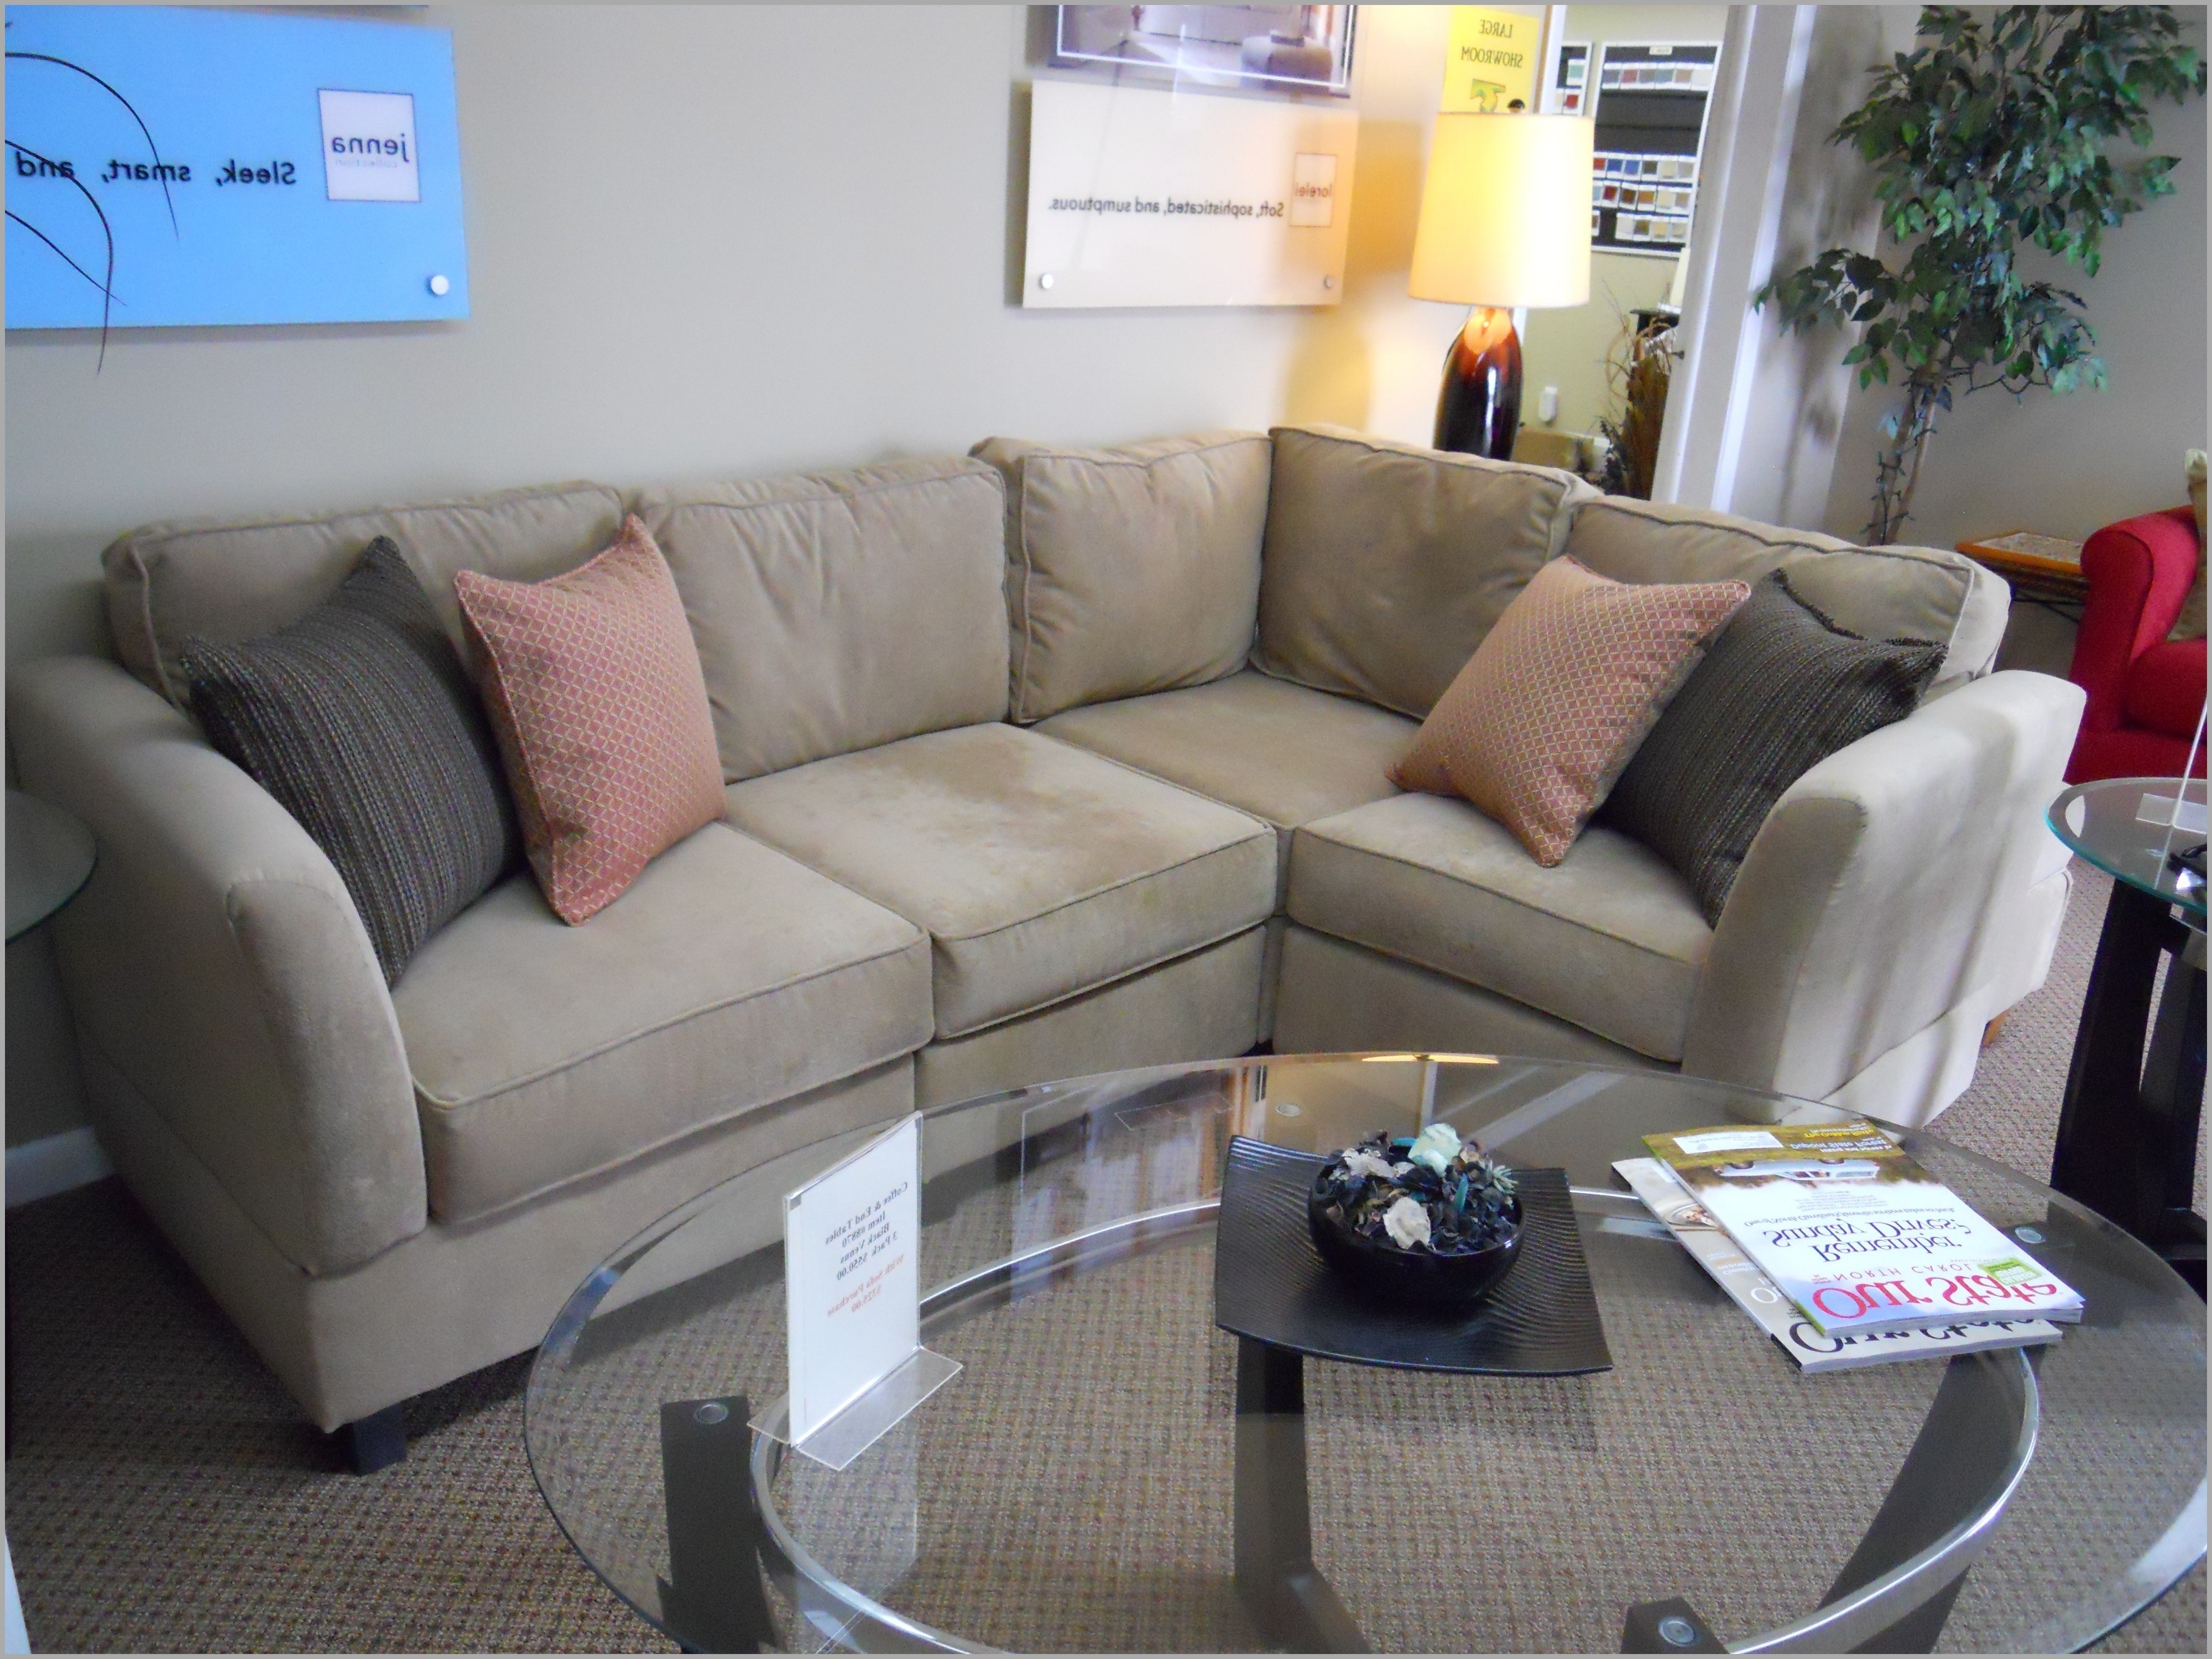 Mini Sectional Sofas With Regard To Most Current Corner Loveseat Small Luxury Leather Sectional Couches For Small (View 9 of 20)